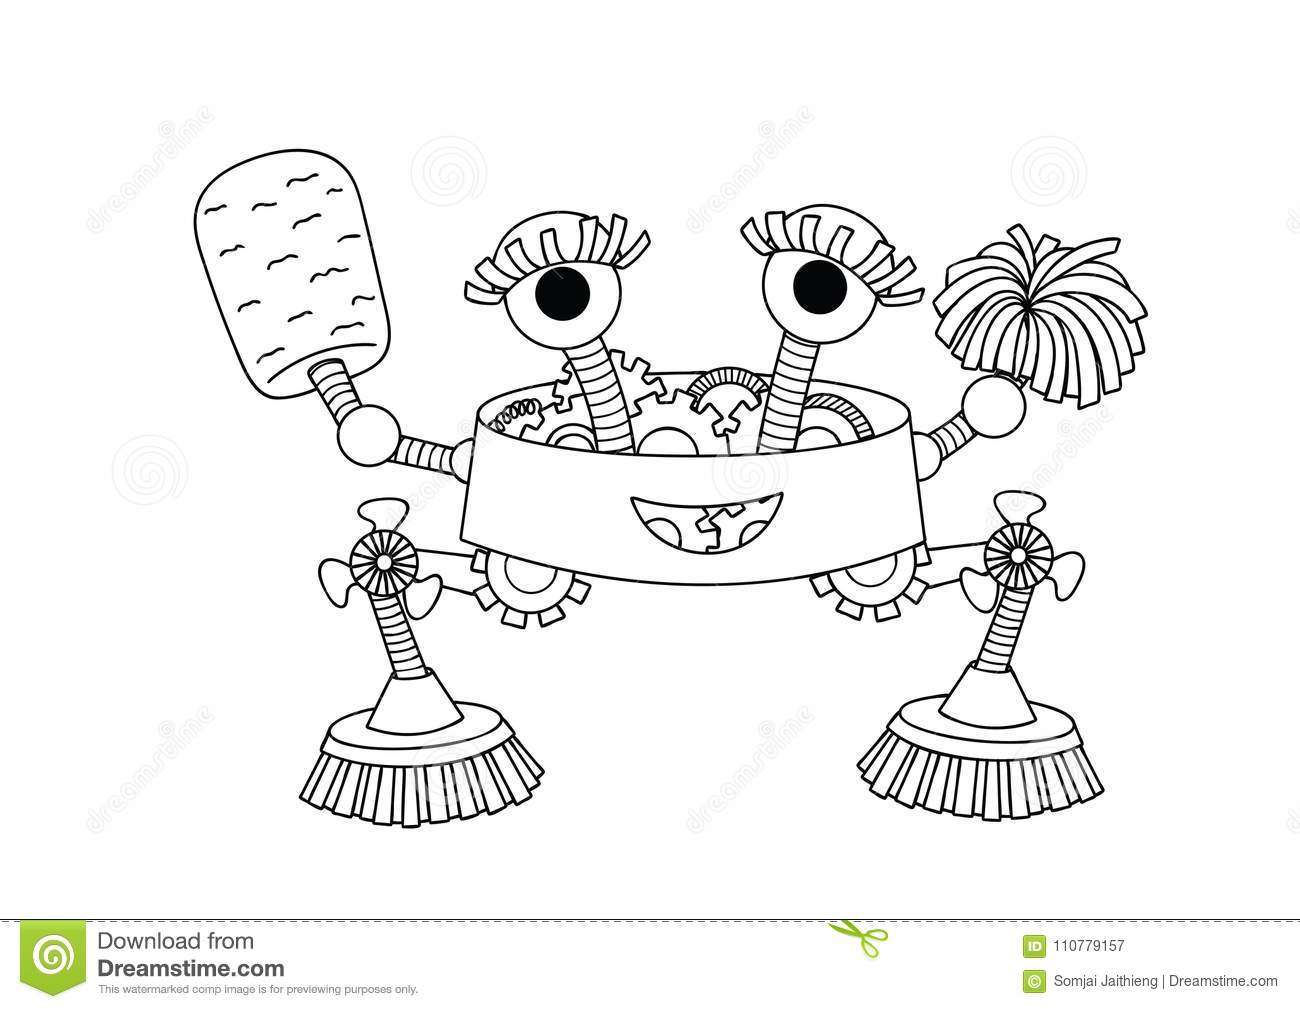 Hand drawn cute housekeeper robot for design element and coloring book page for both kids and adults. Vector illustration